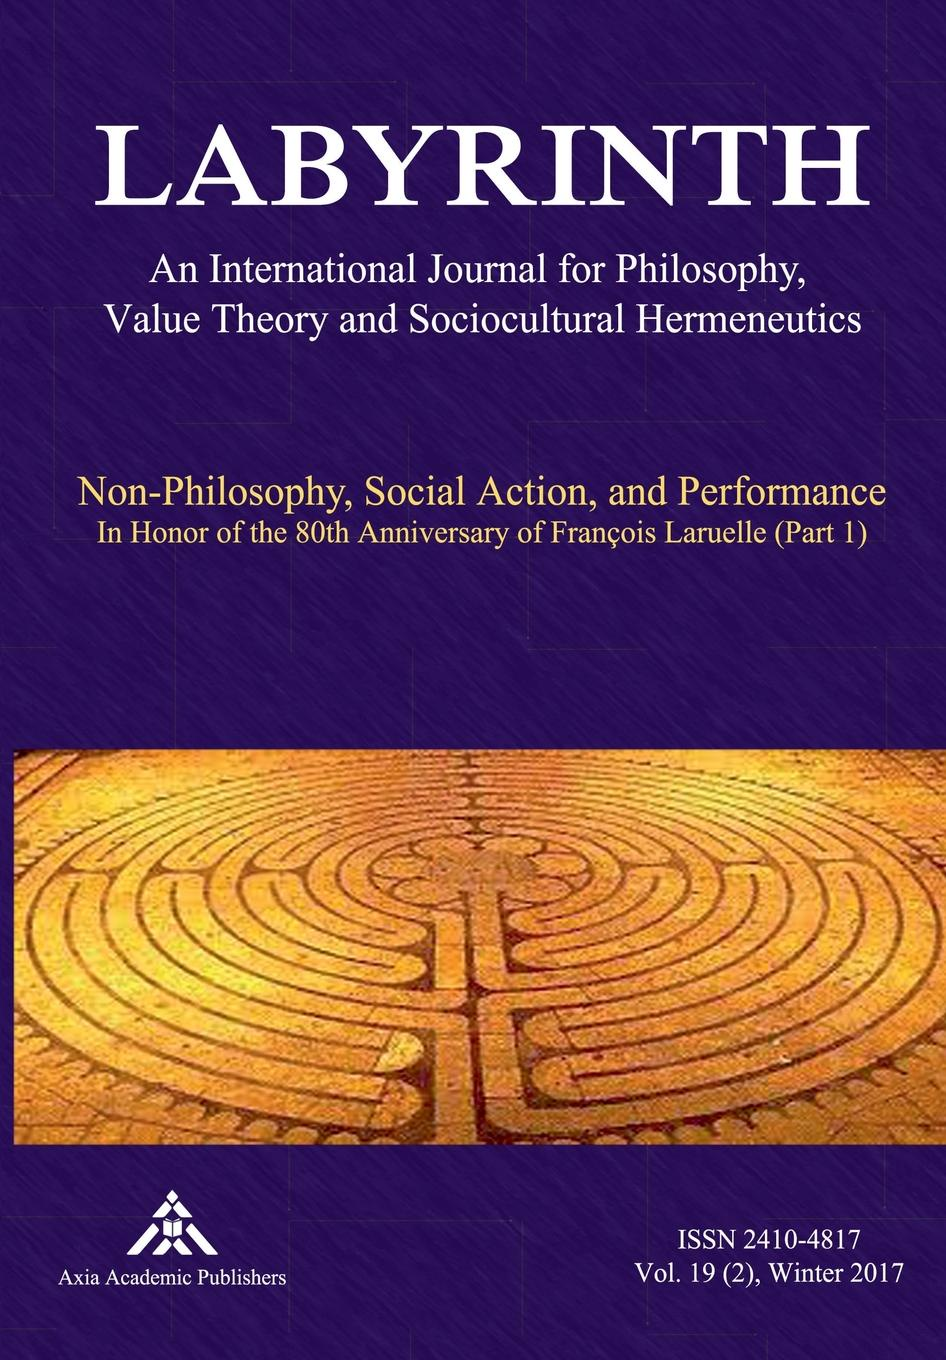 Non-Philosophy, Social Action, and Performance francois laruelle intellectuals and power